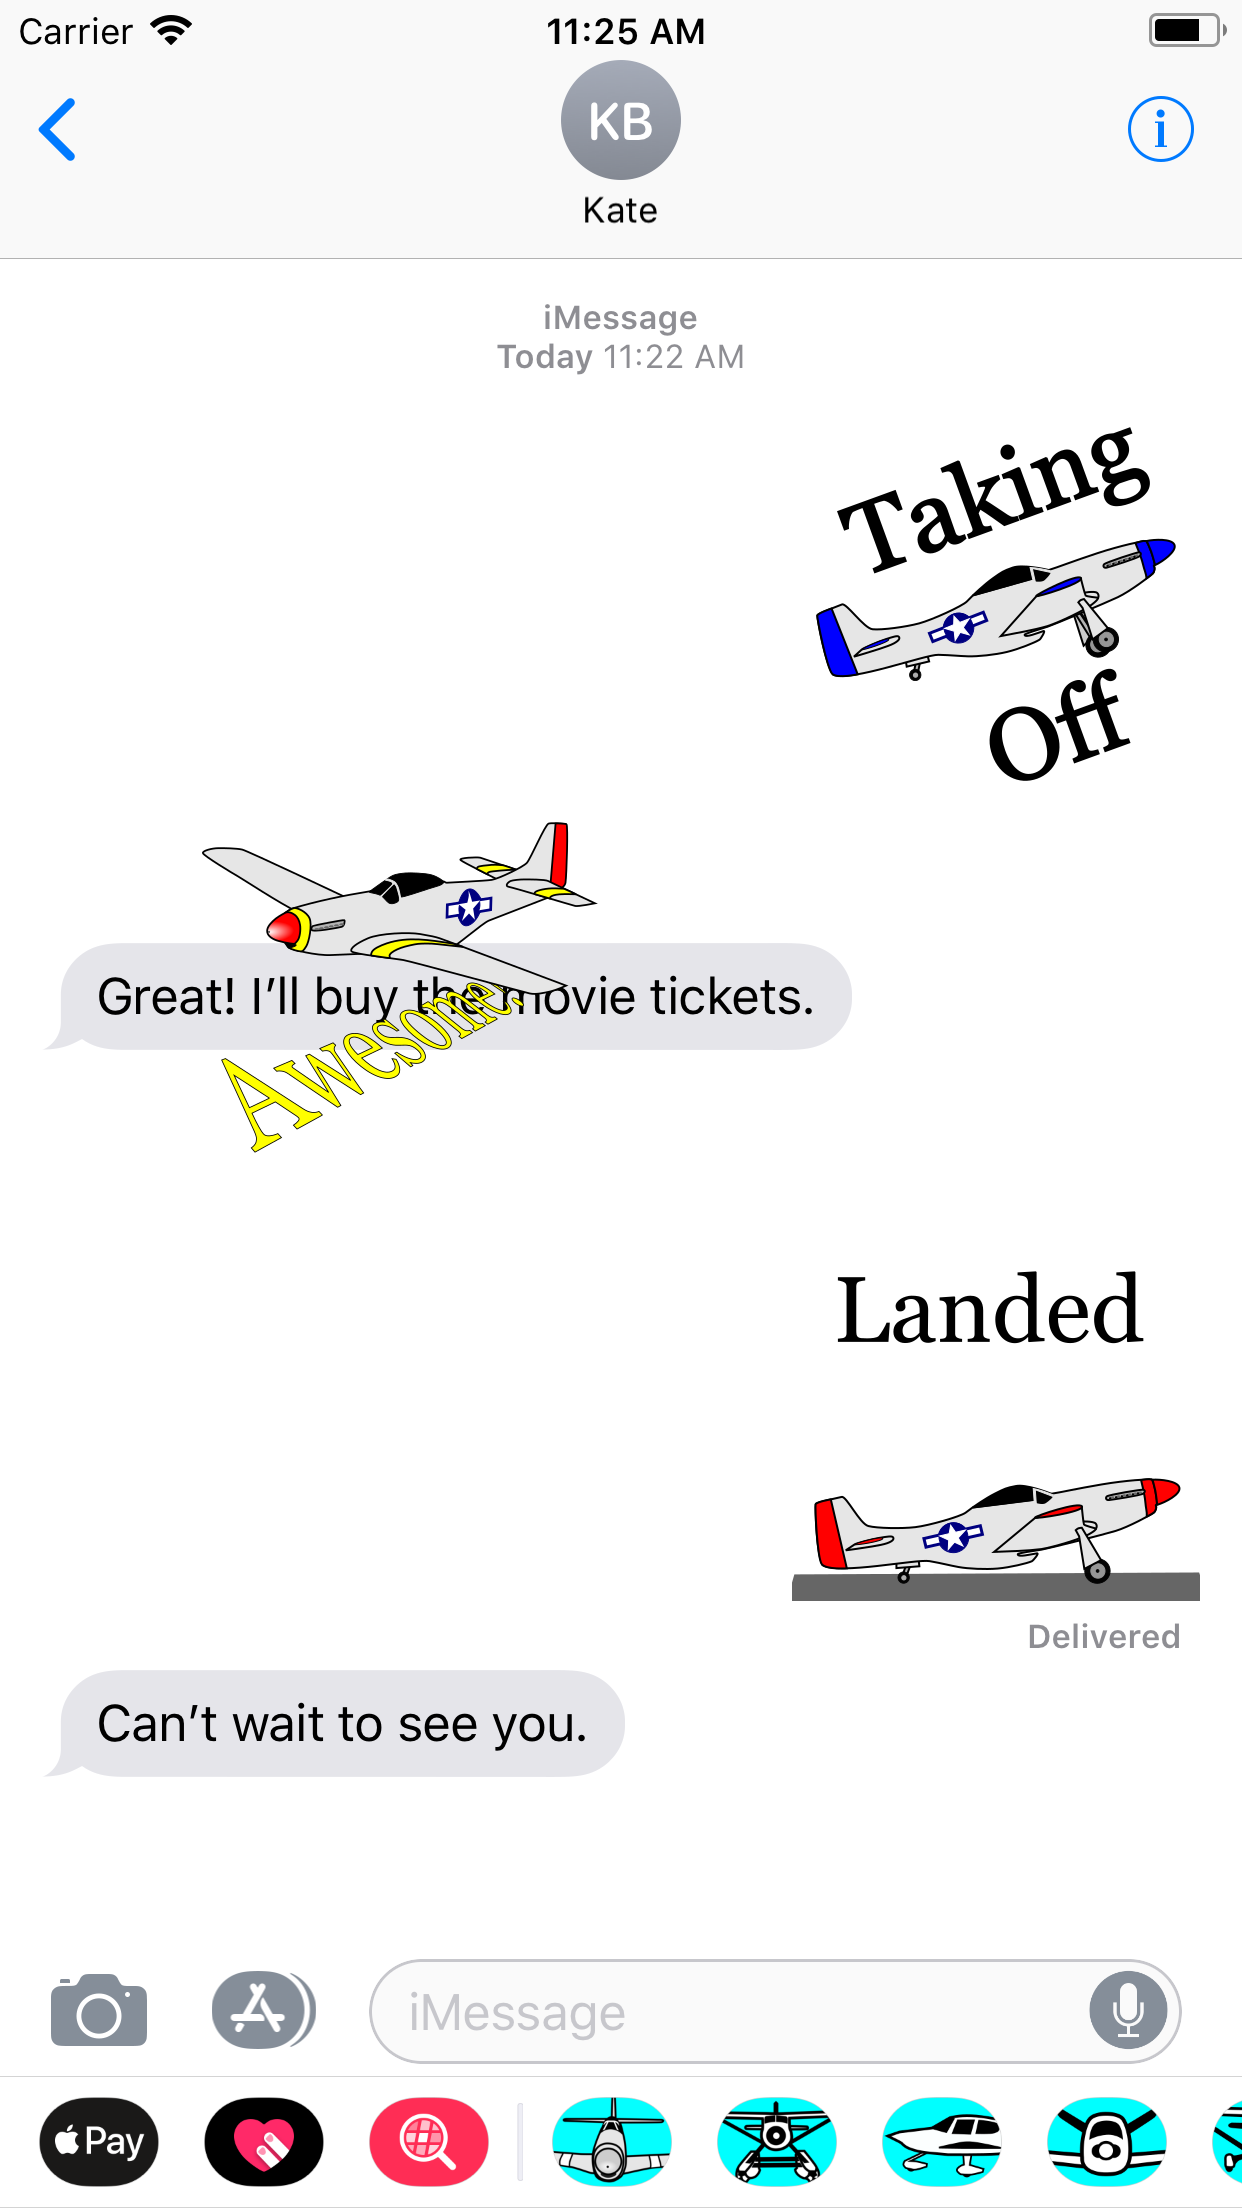 Sample texting conversation using airplane stickers